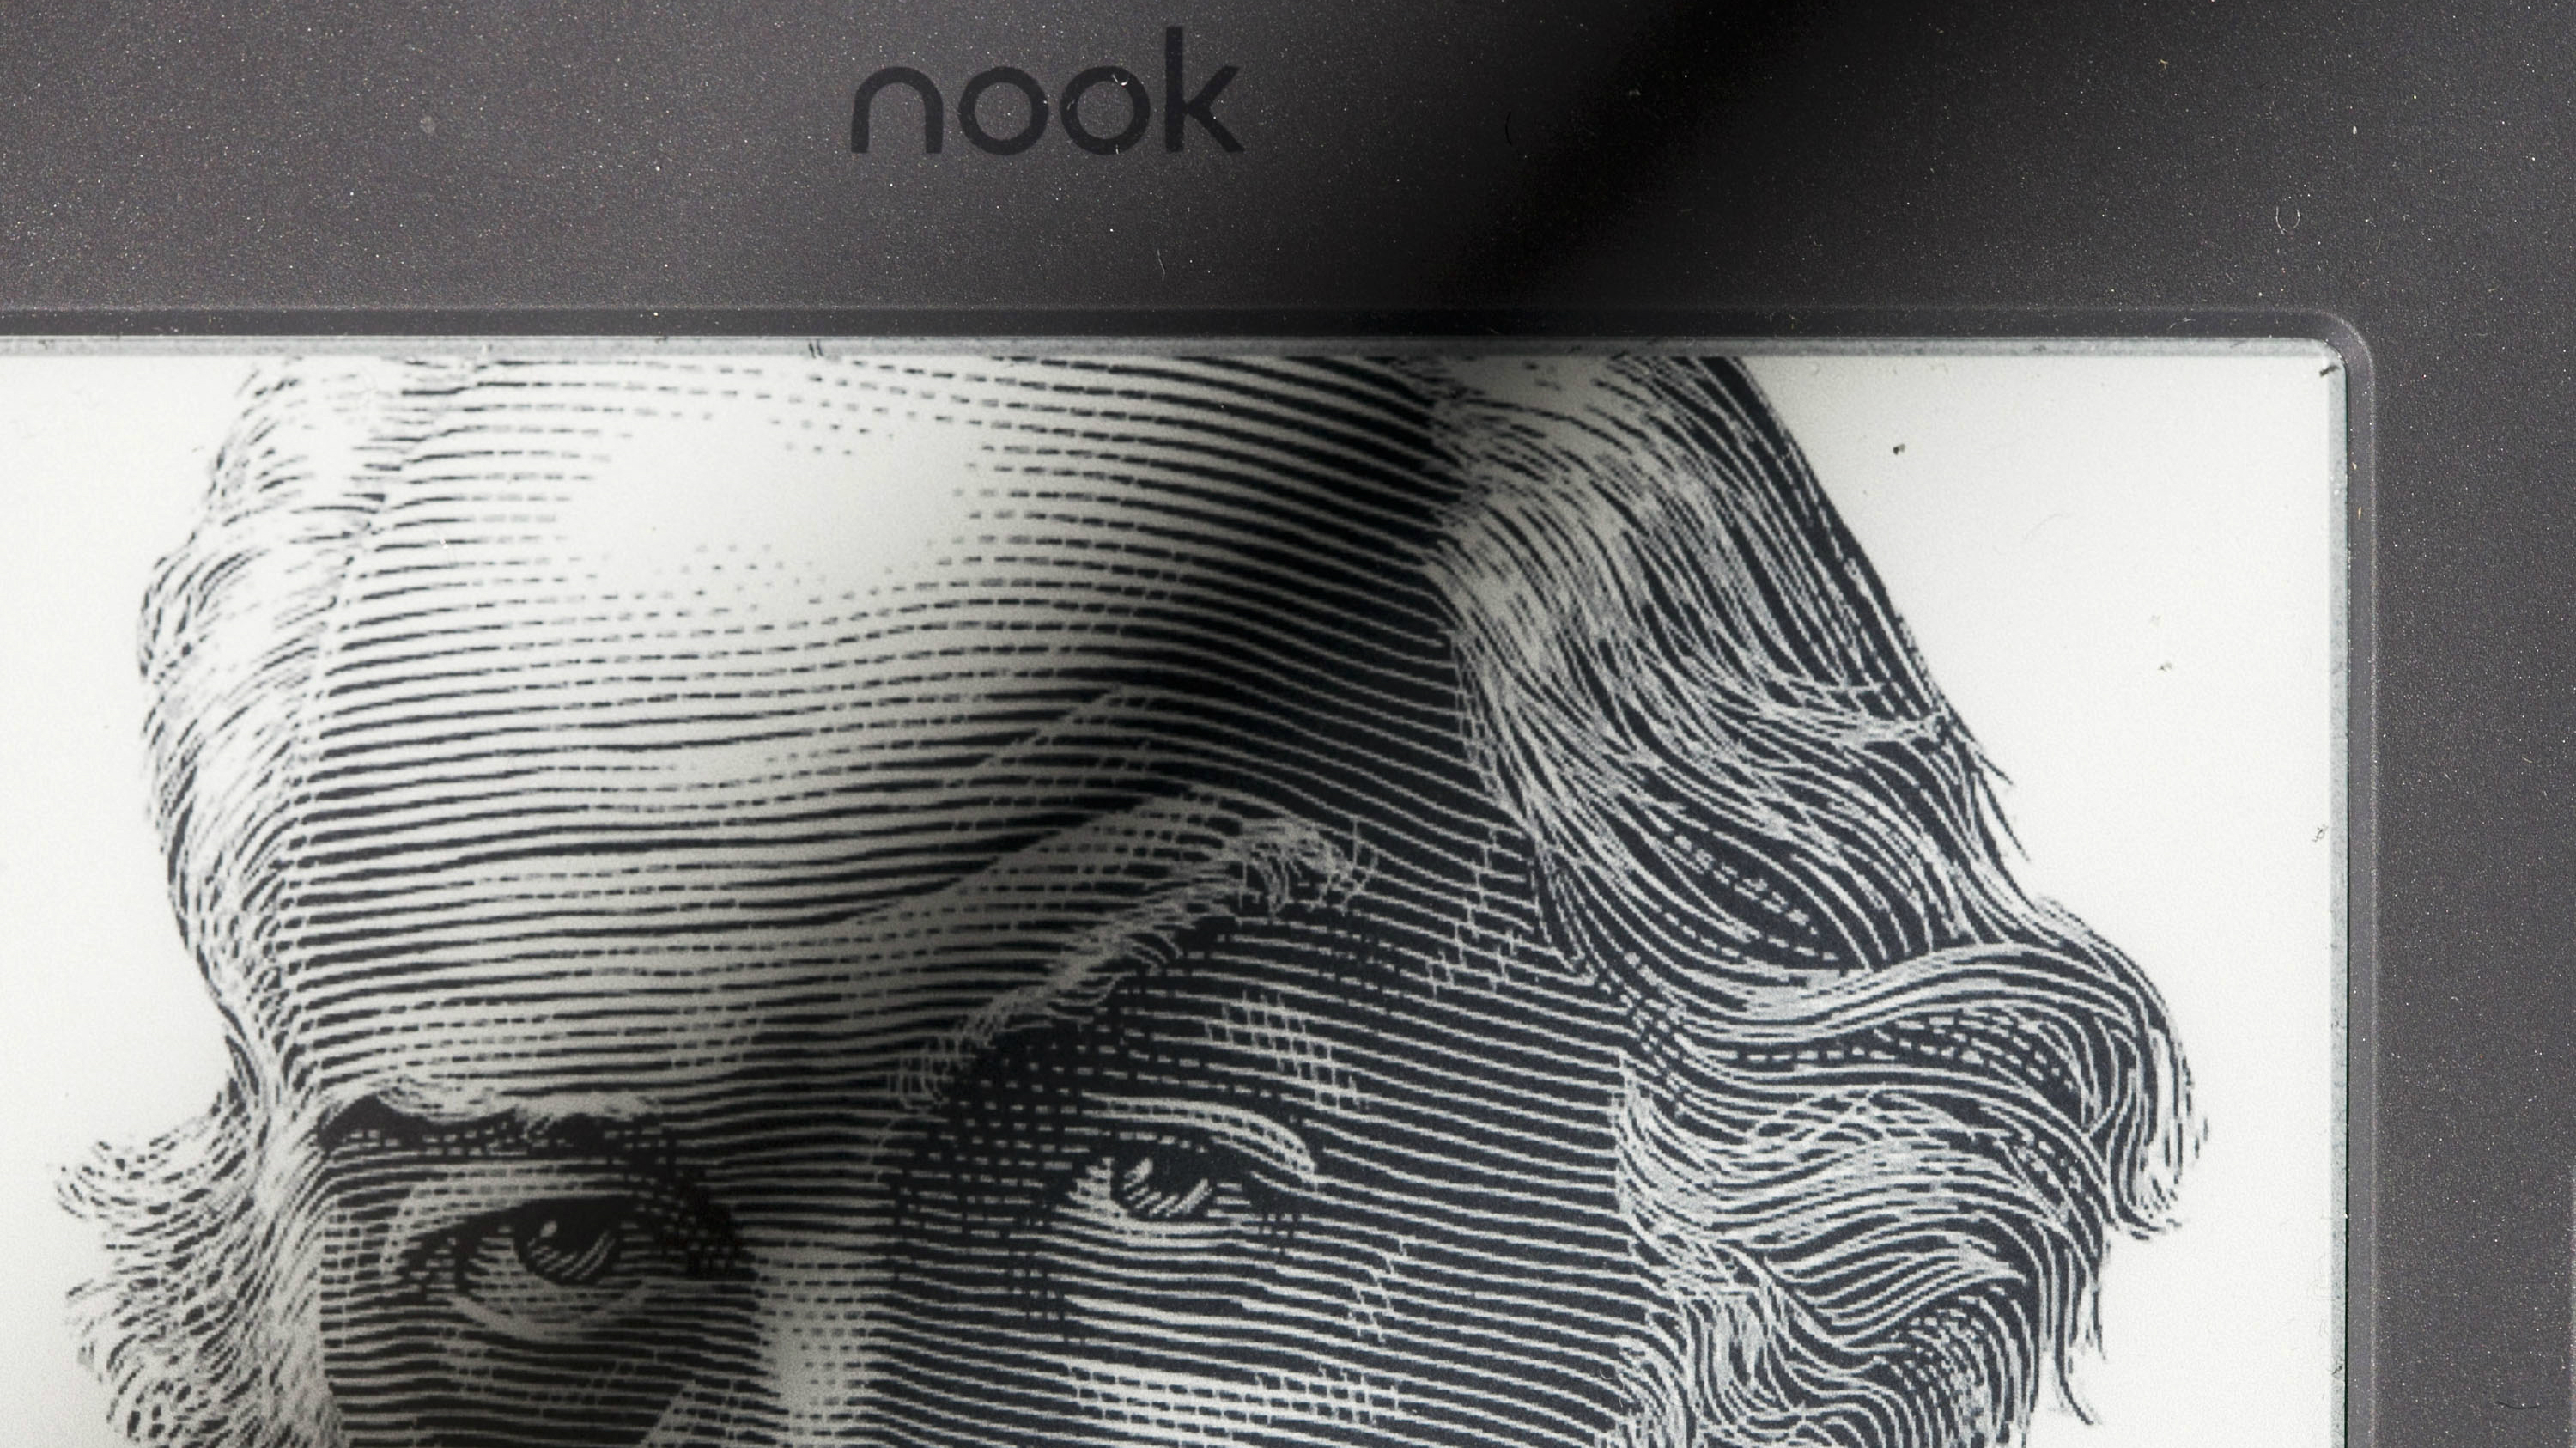 barnes and noble nook tablet books